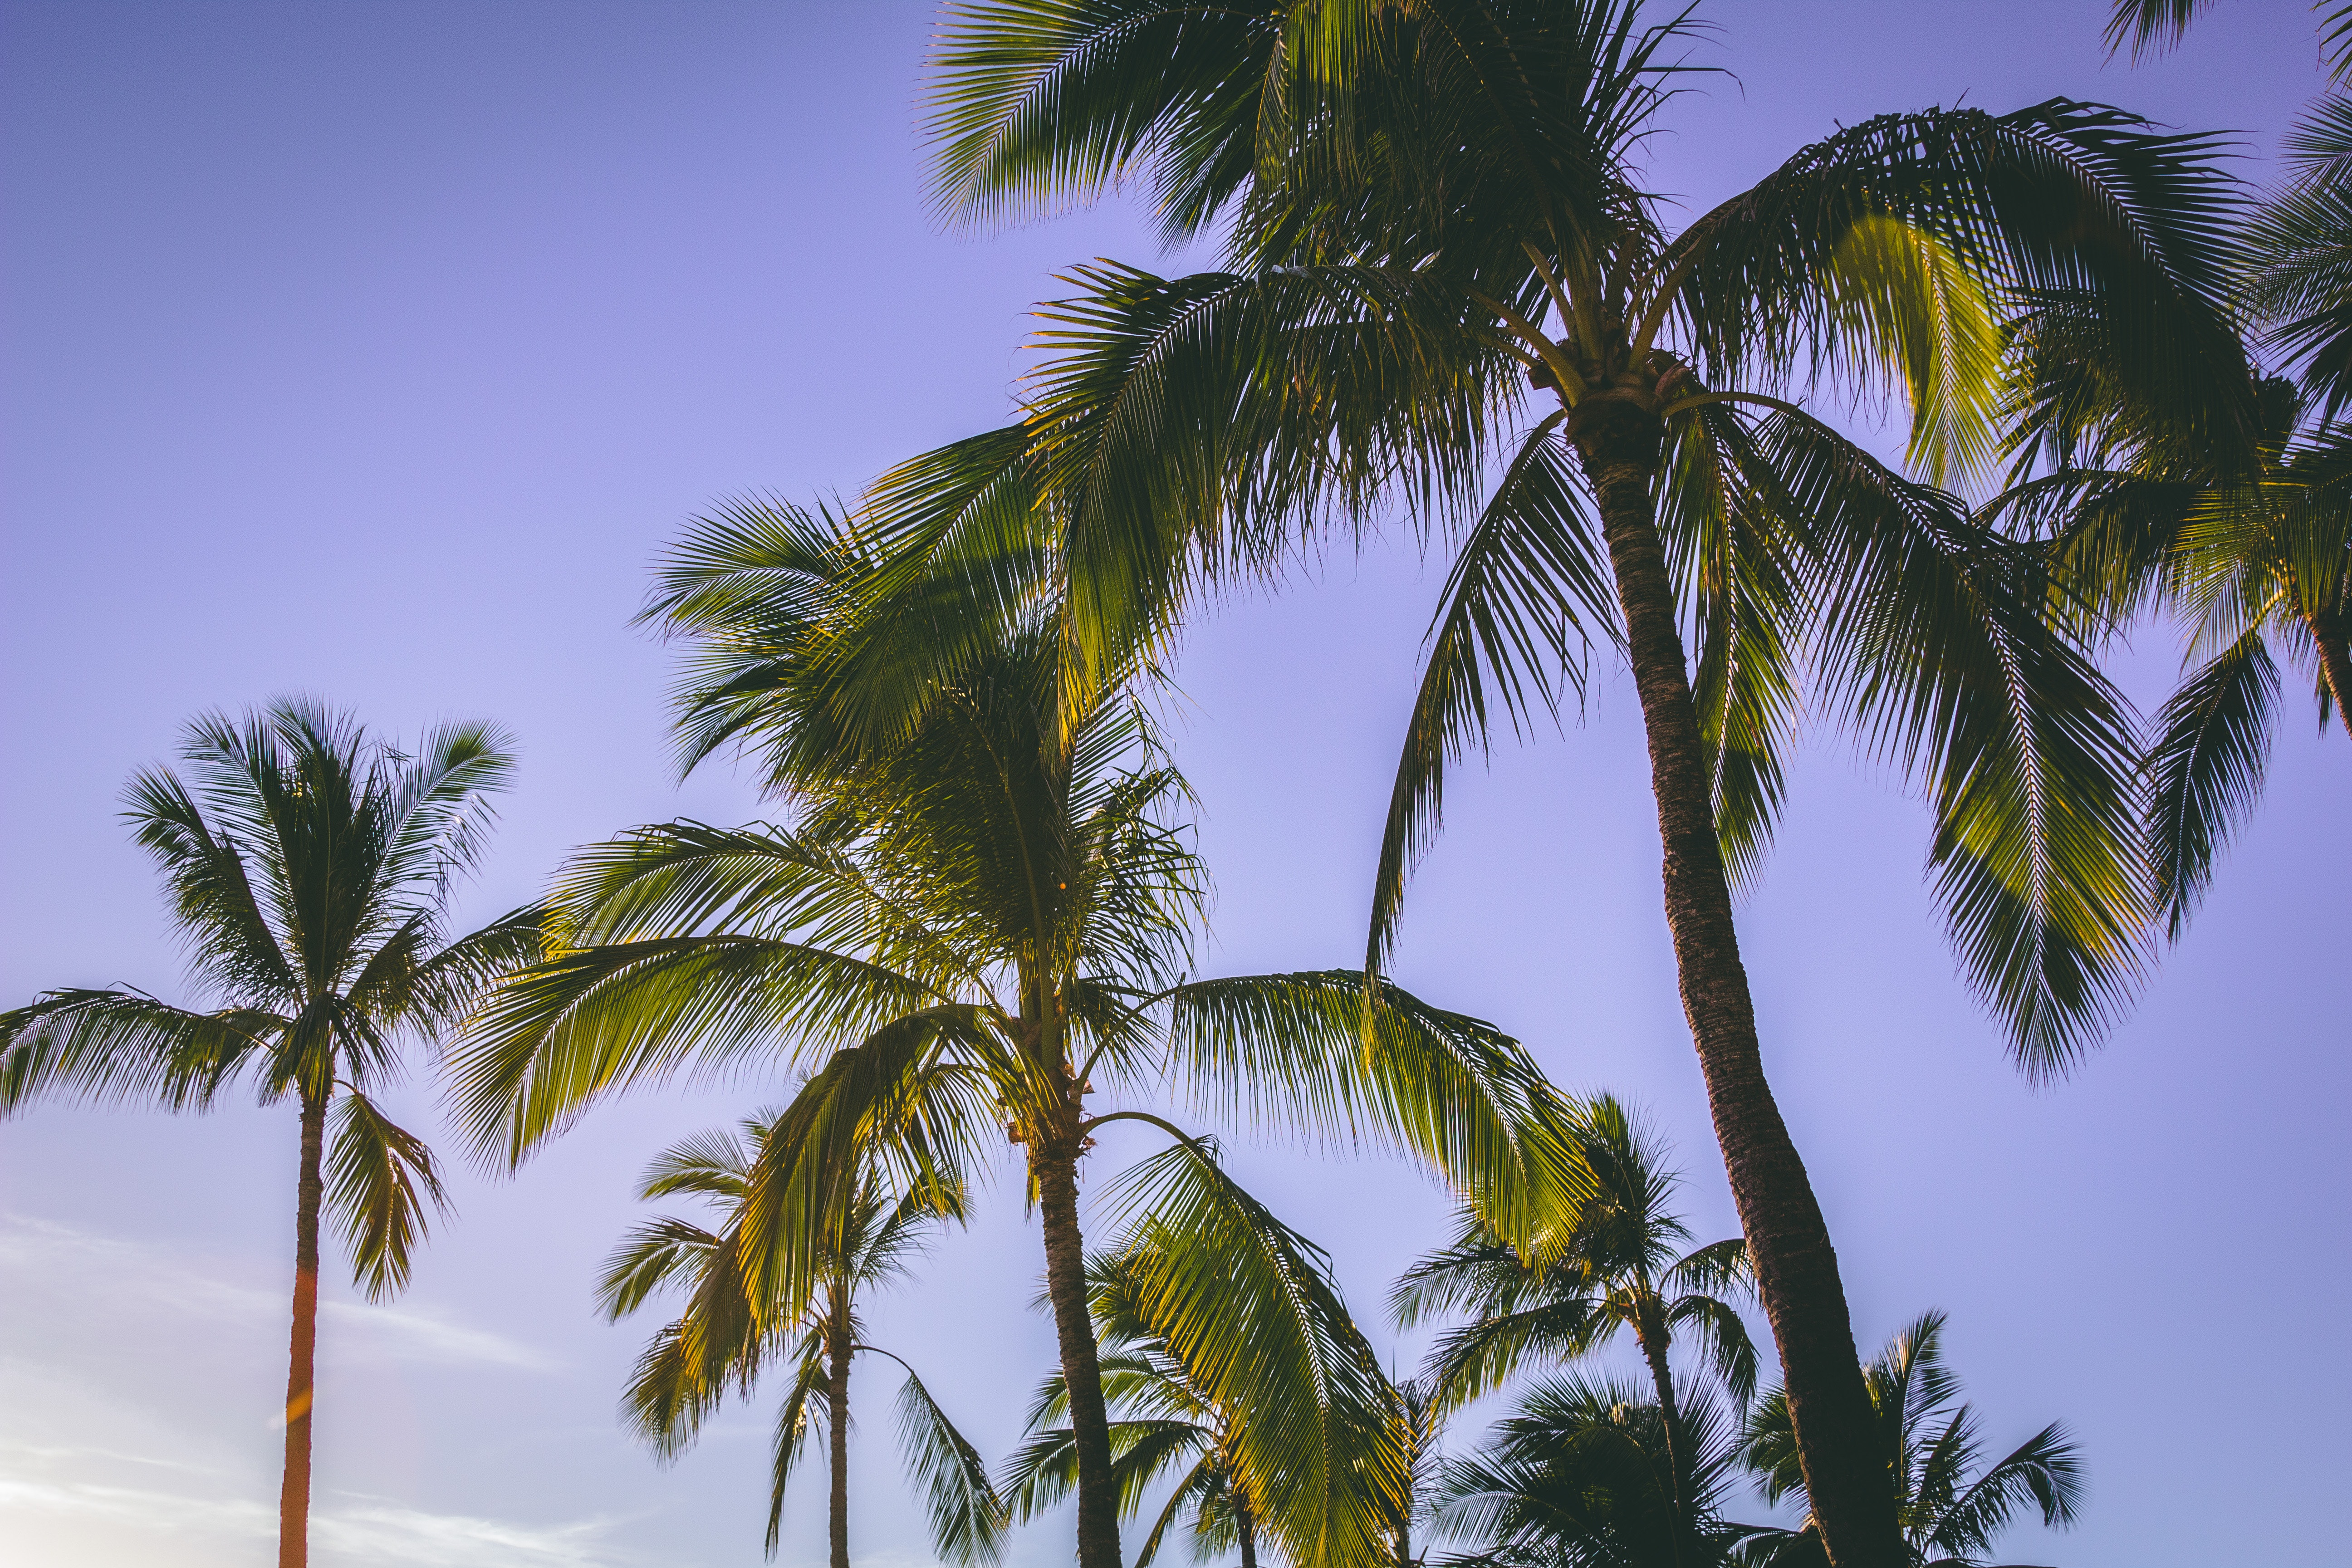 Low Angle Photography Of Coconut Trees, Blue skies, Palms, Vacation, Tropical, HQ Photo